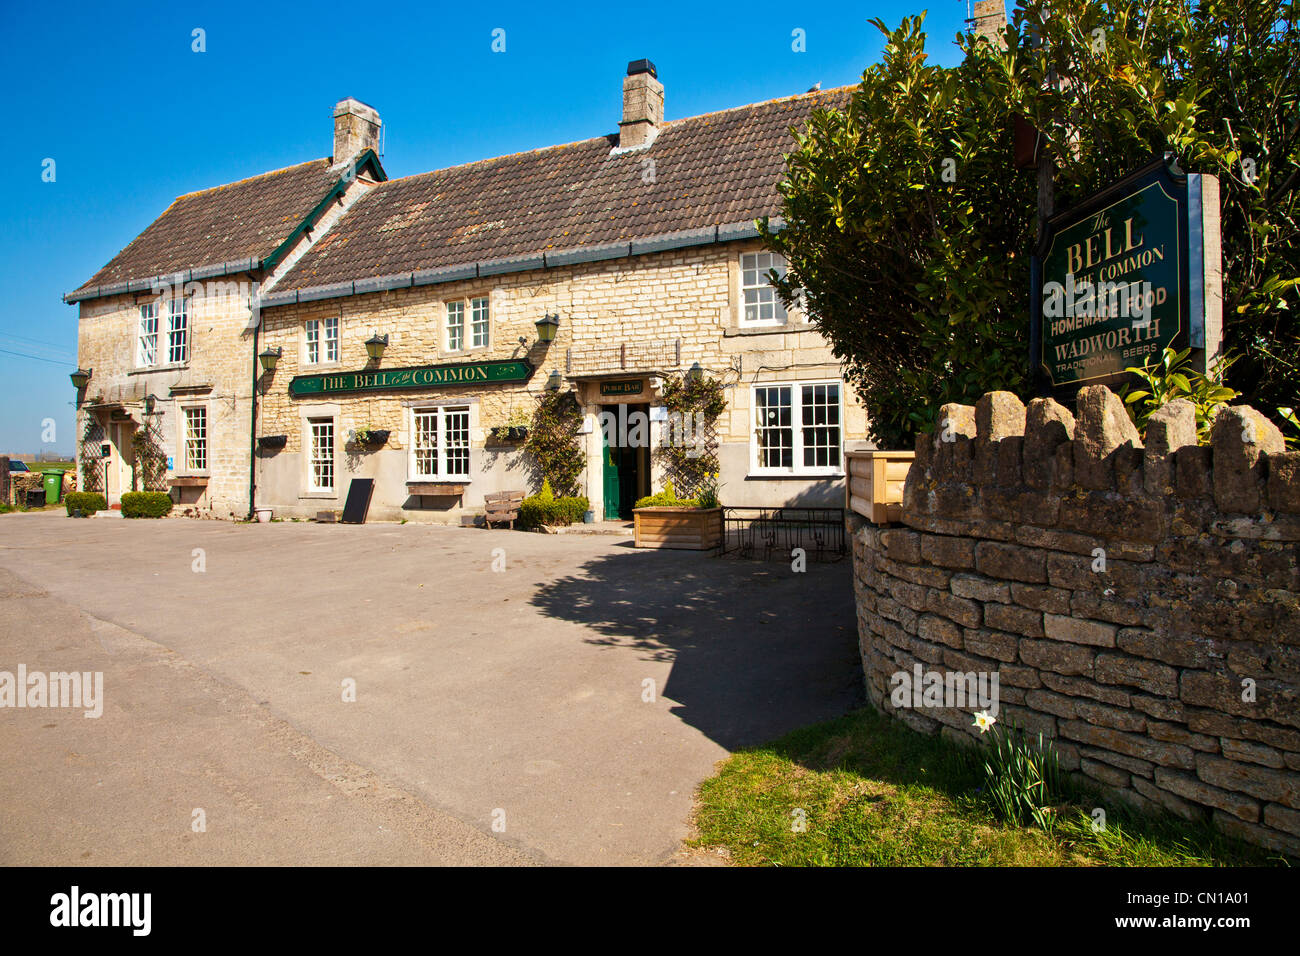 A typical, English country village pub or inn in Wiltshire, England, UK - Stock Image